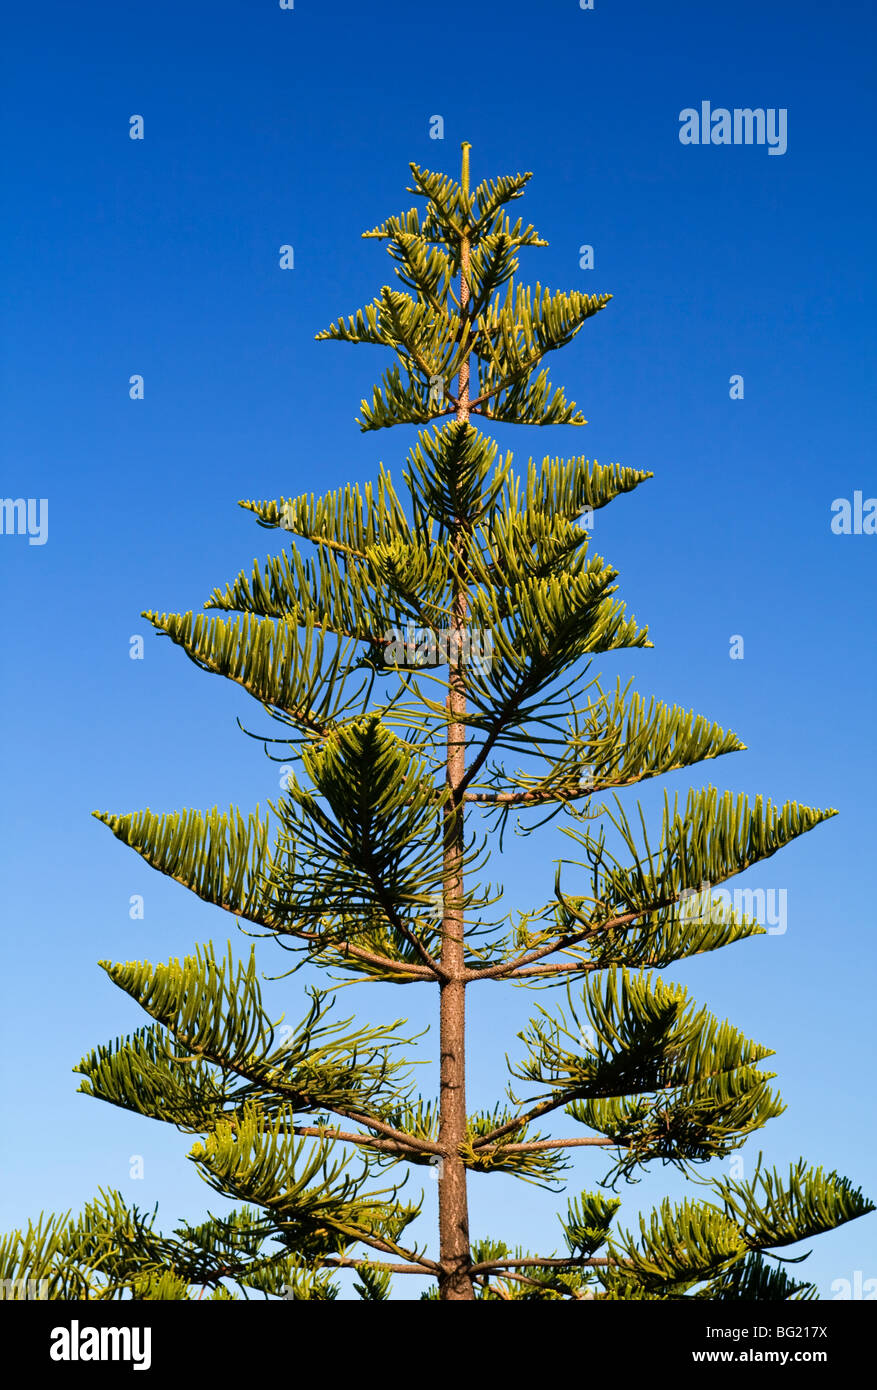 View of the top part of a pine tree with blue sky behind - Stock Image